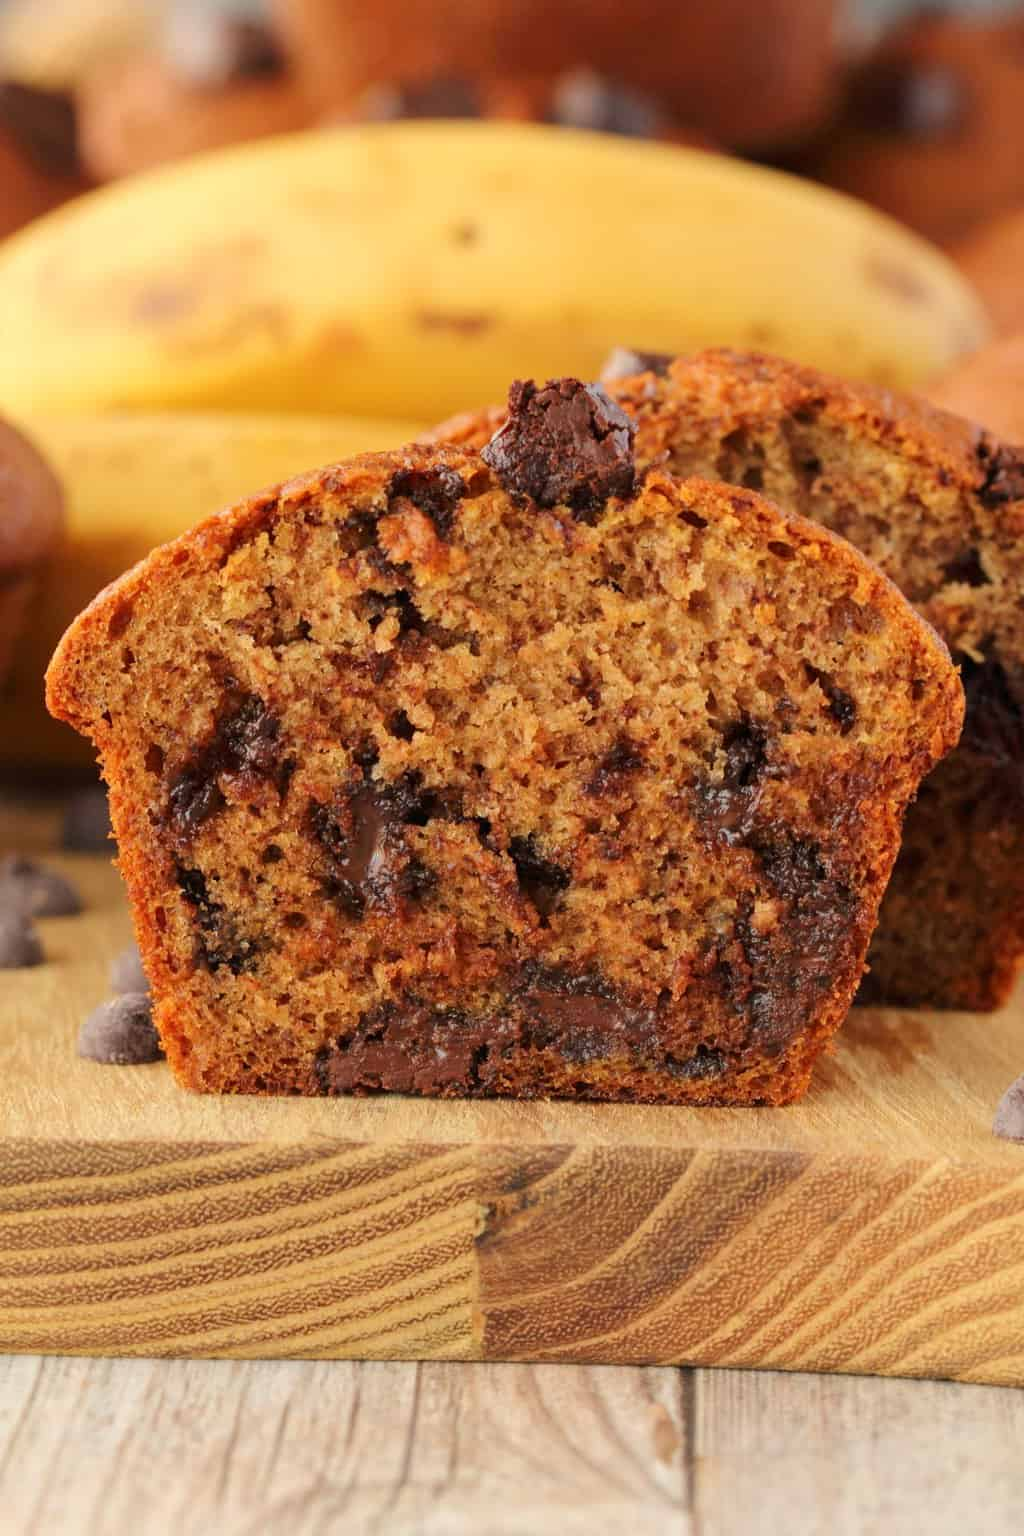 Vegan banana chocolate chip muffin sliced in half to show the center.